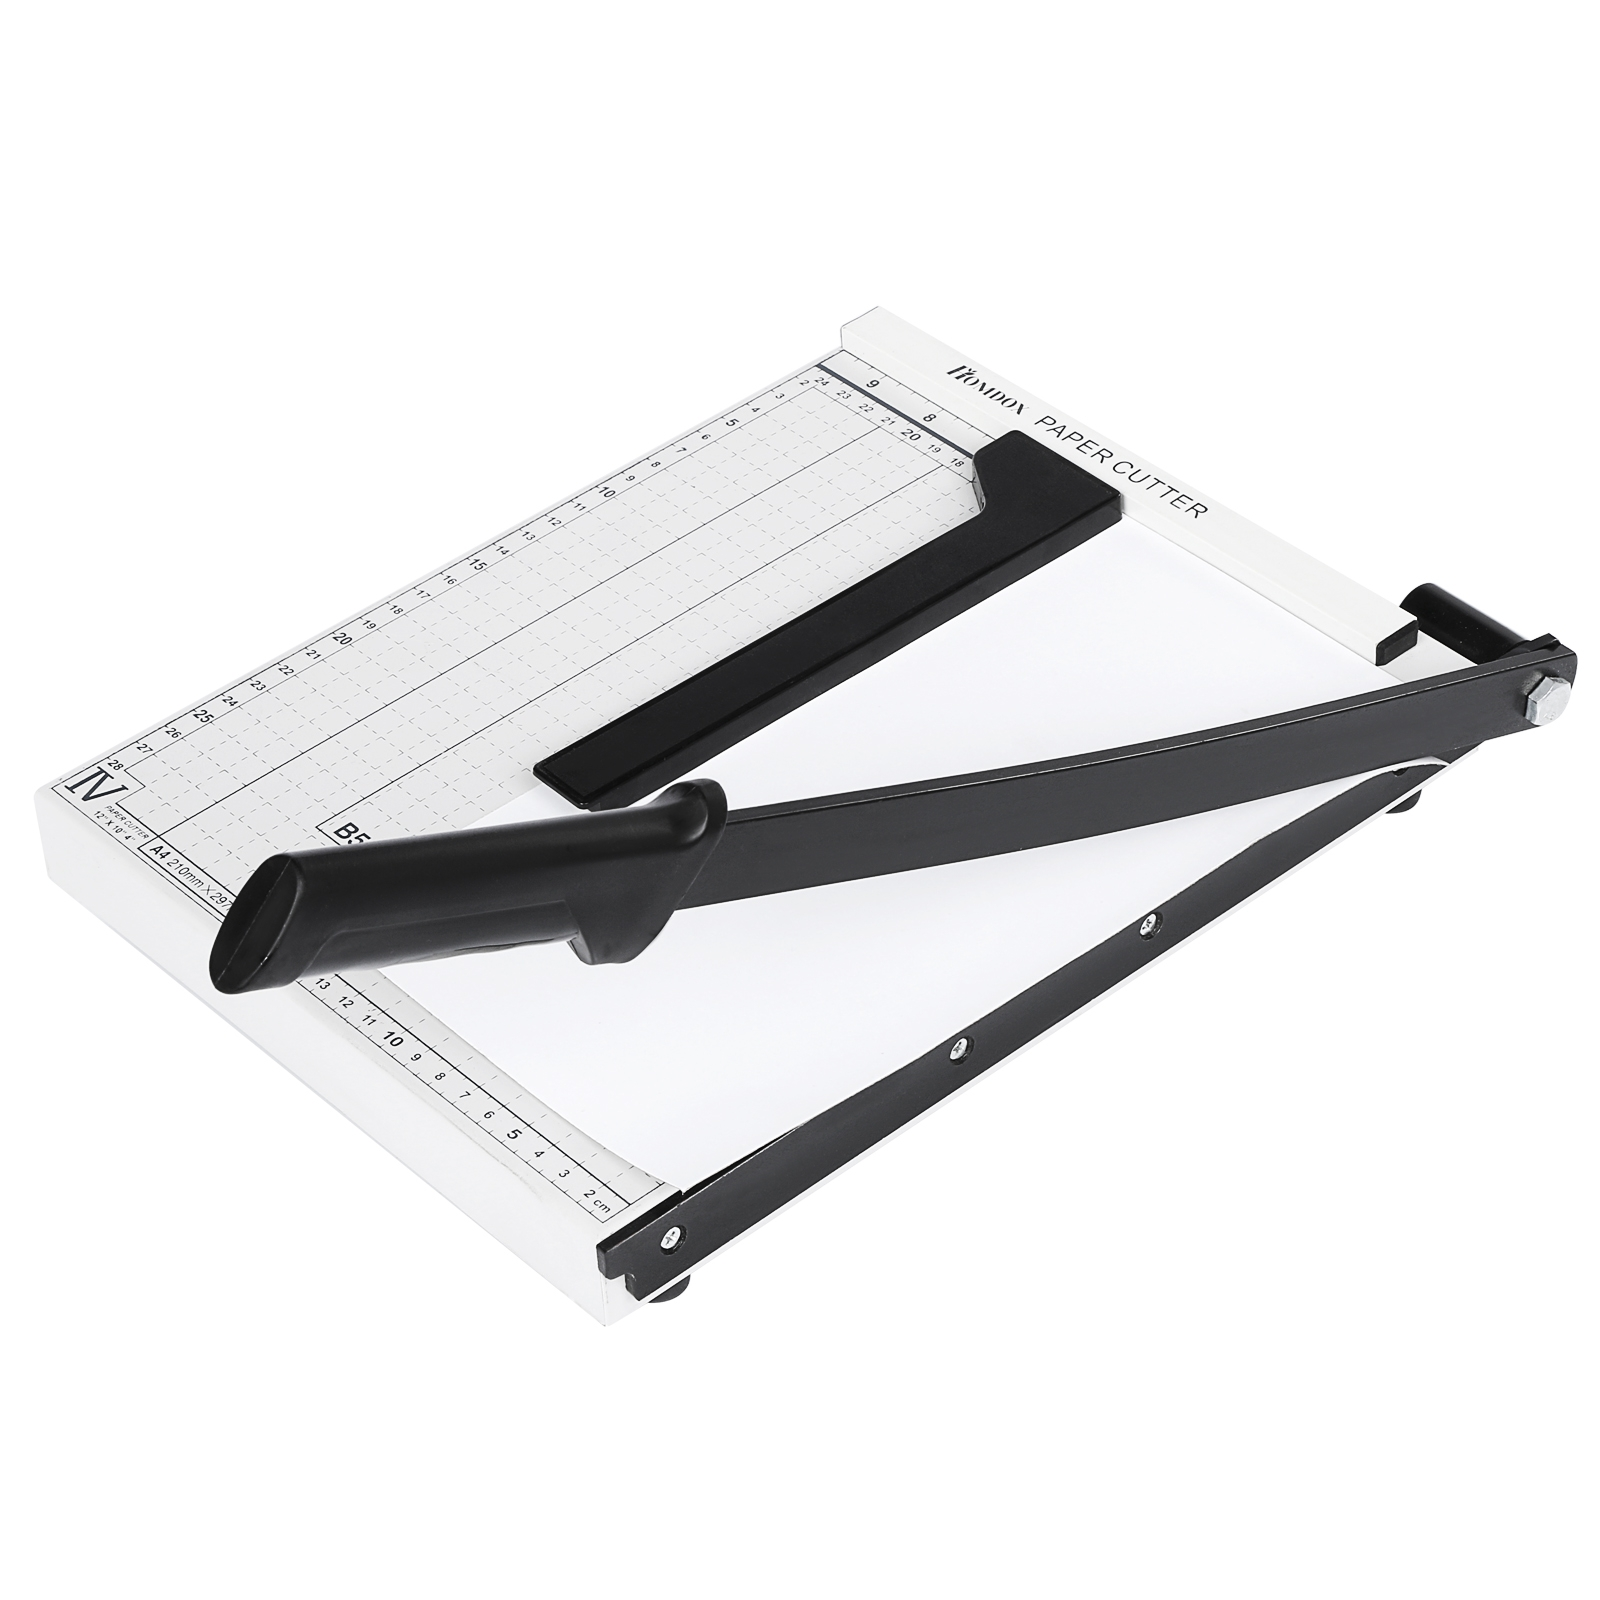 HOMDOX Professional A4 Paper Cutter Steel Heavy Duty 10 SHeets Paper Trimmer by